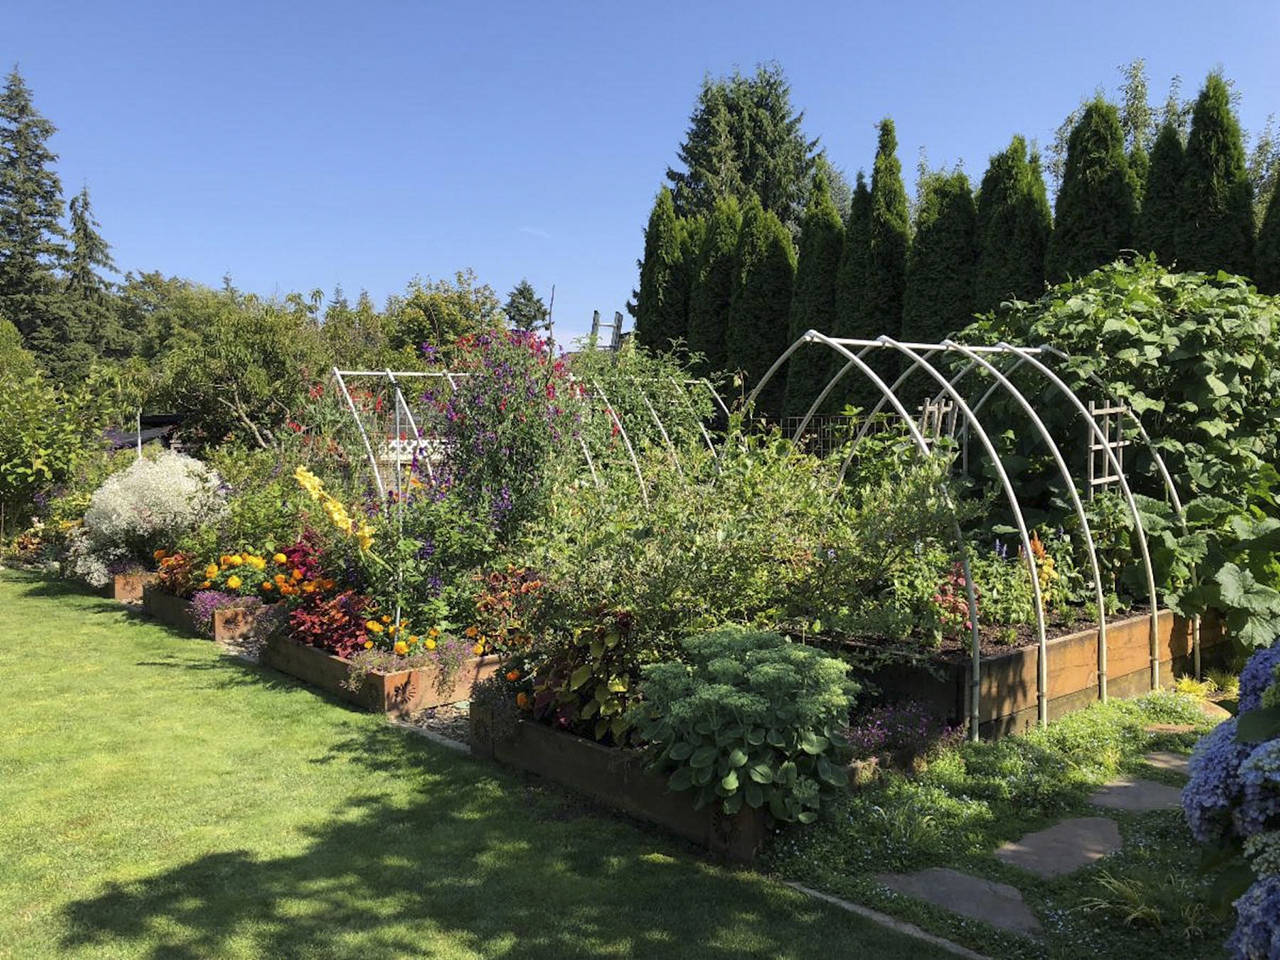 If you decide to add raised beds to your garden, the dimensions should be at least 10 to 12 inches high and no more than 4 to 5 feet wide. The length is up to you and your available space. (Nicole Phillips)